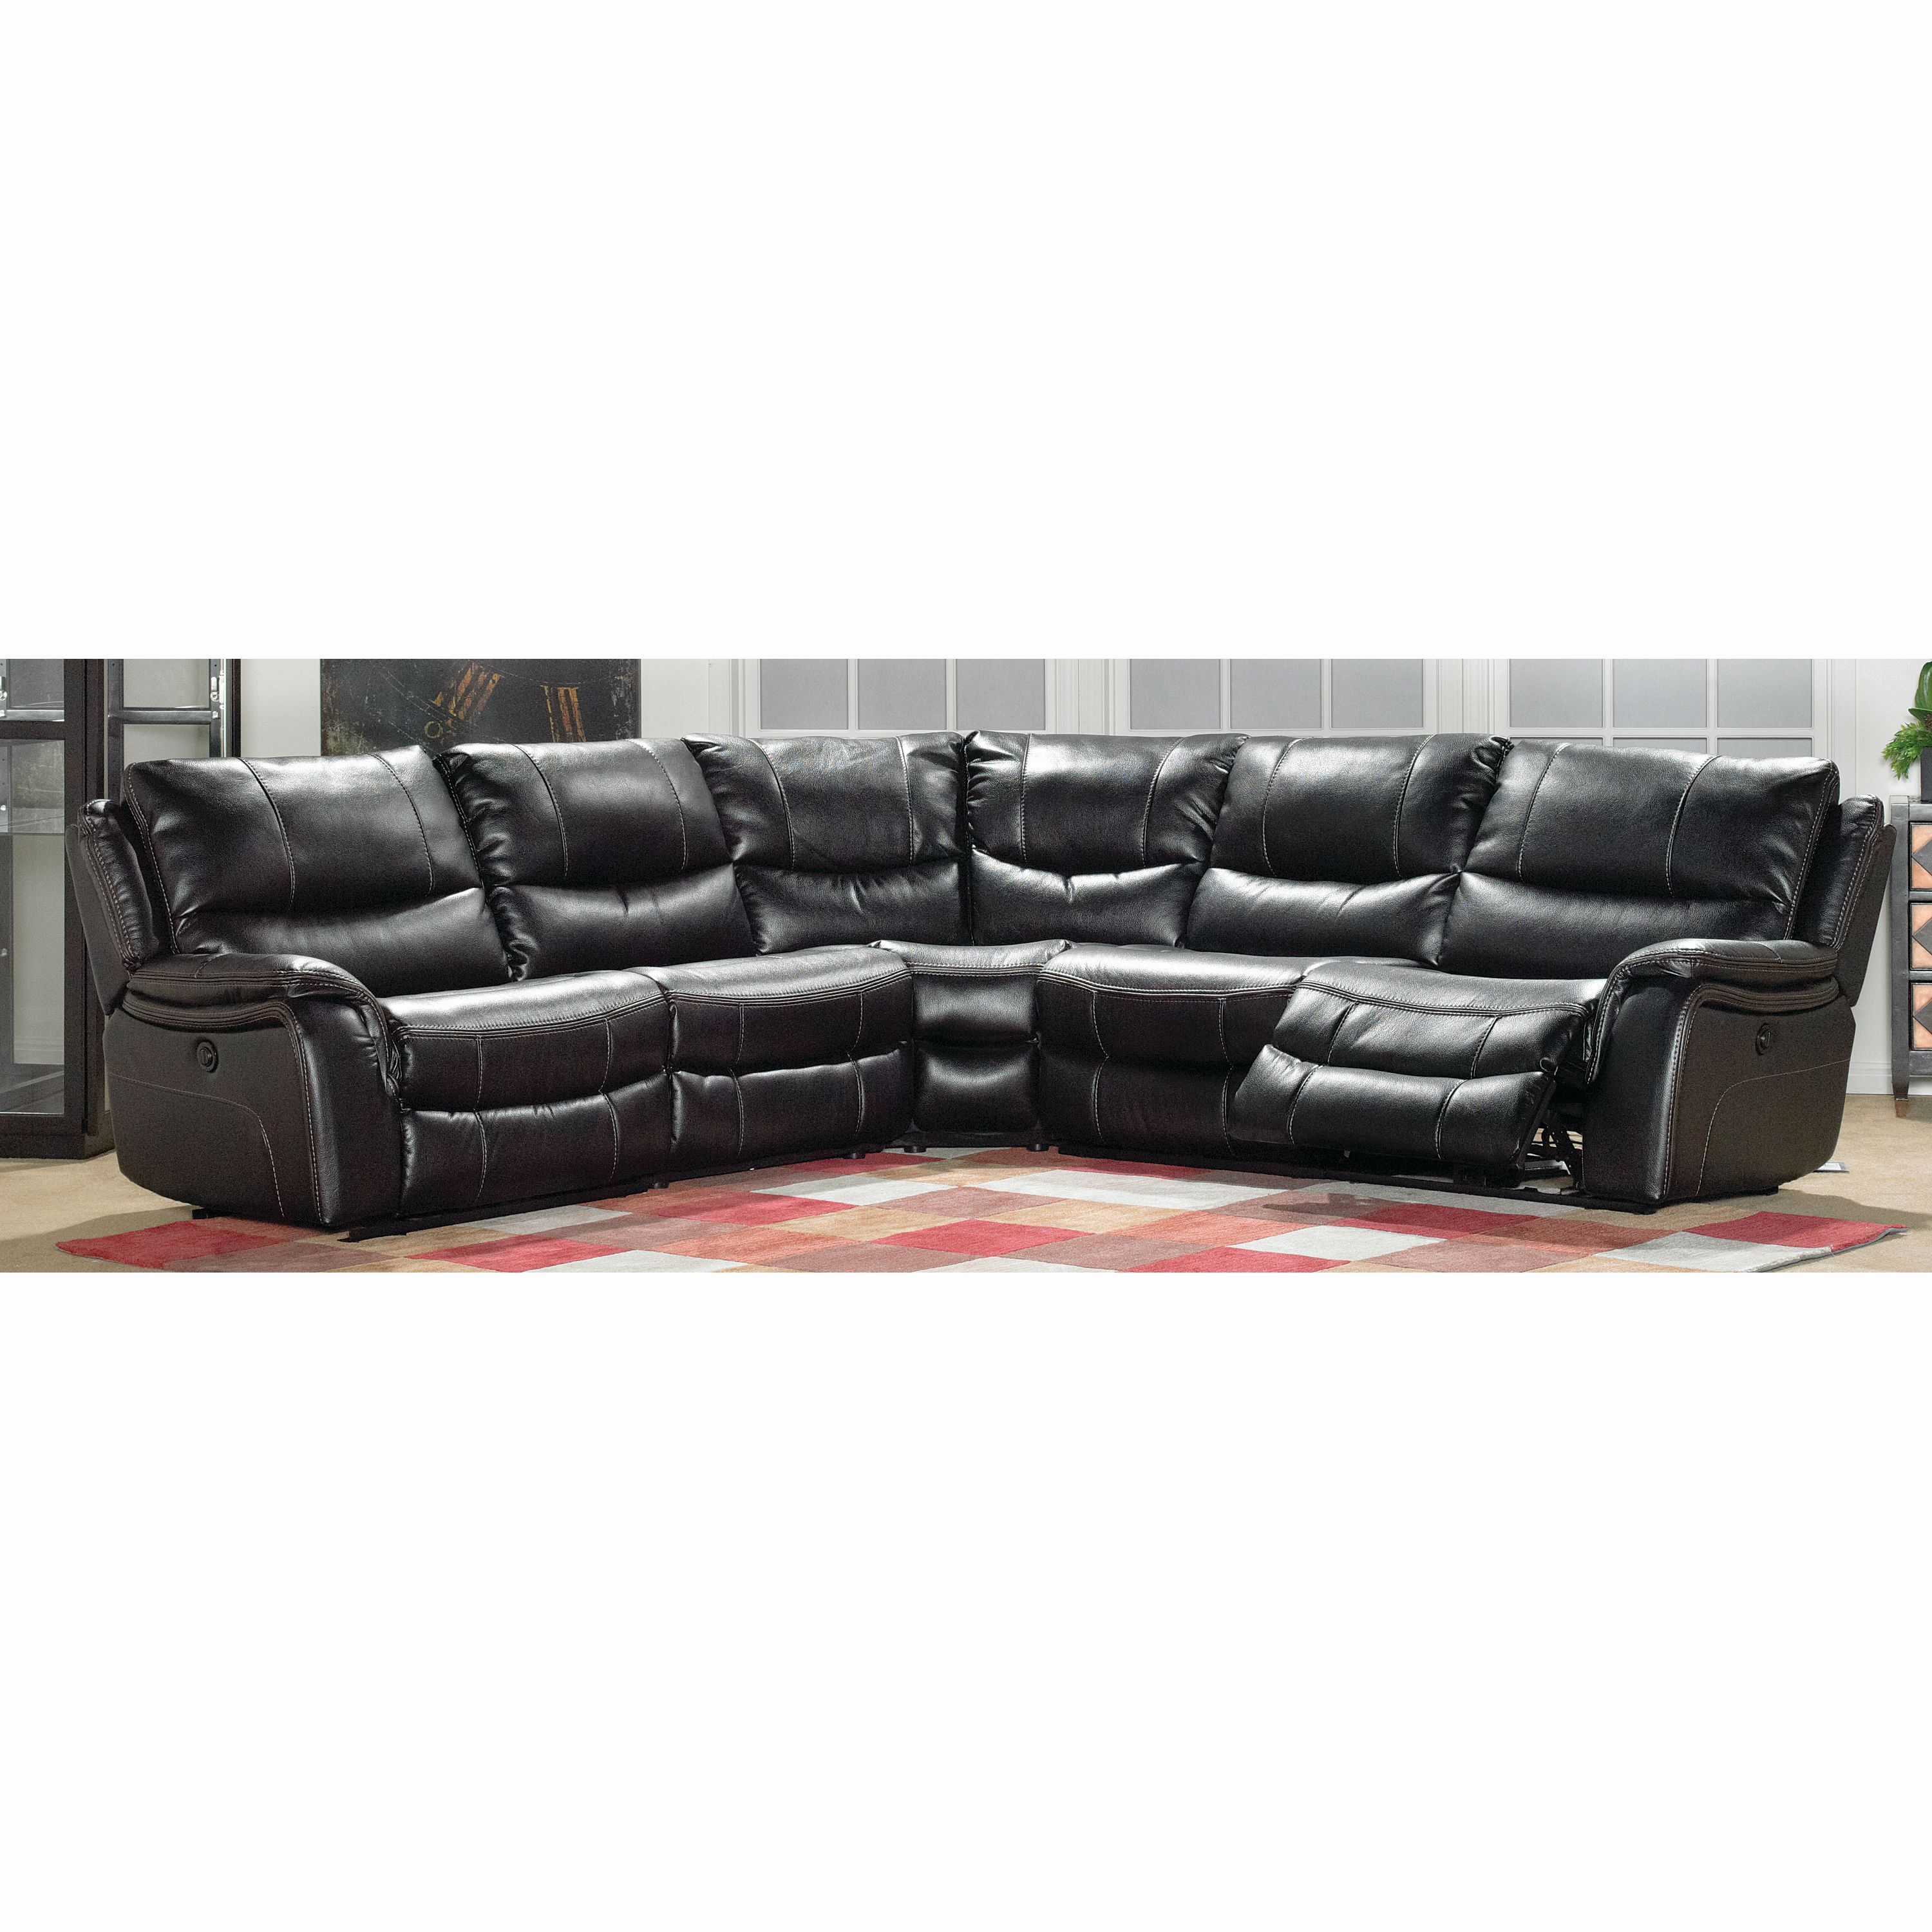 elegant living room sectional sofas picture living room sectional rh pinterest com